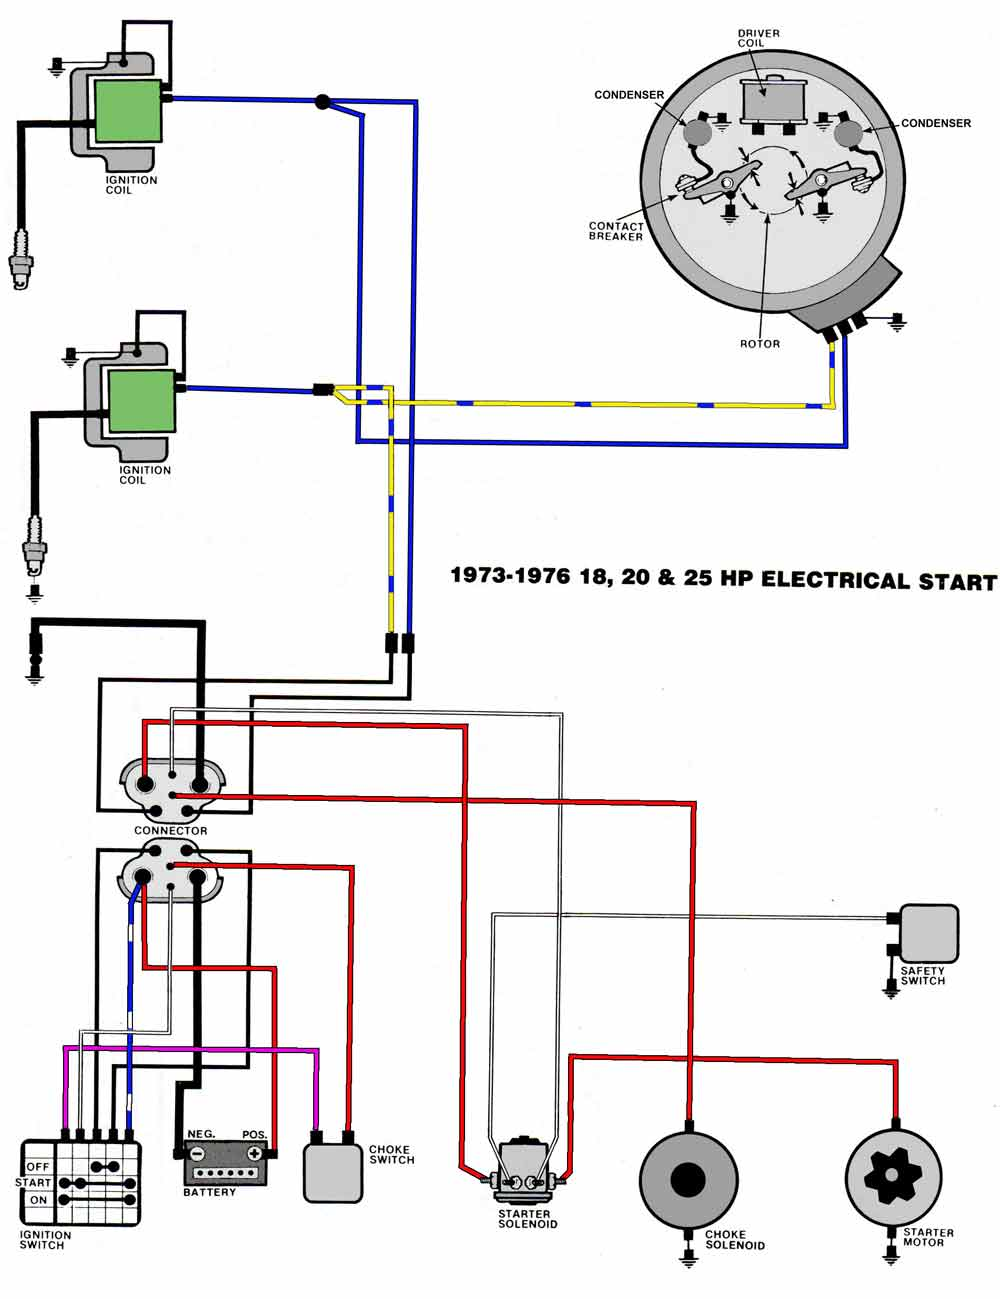 hight resolution of 1996 mercury 115 outboard wiring diagram auto electrical wiring 3 wire switch wiring diagram 1975 johnson